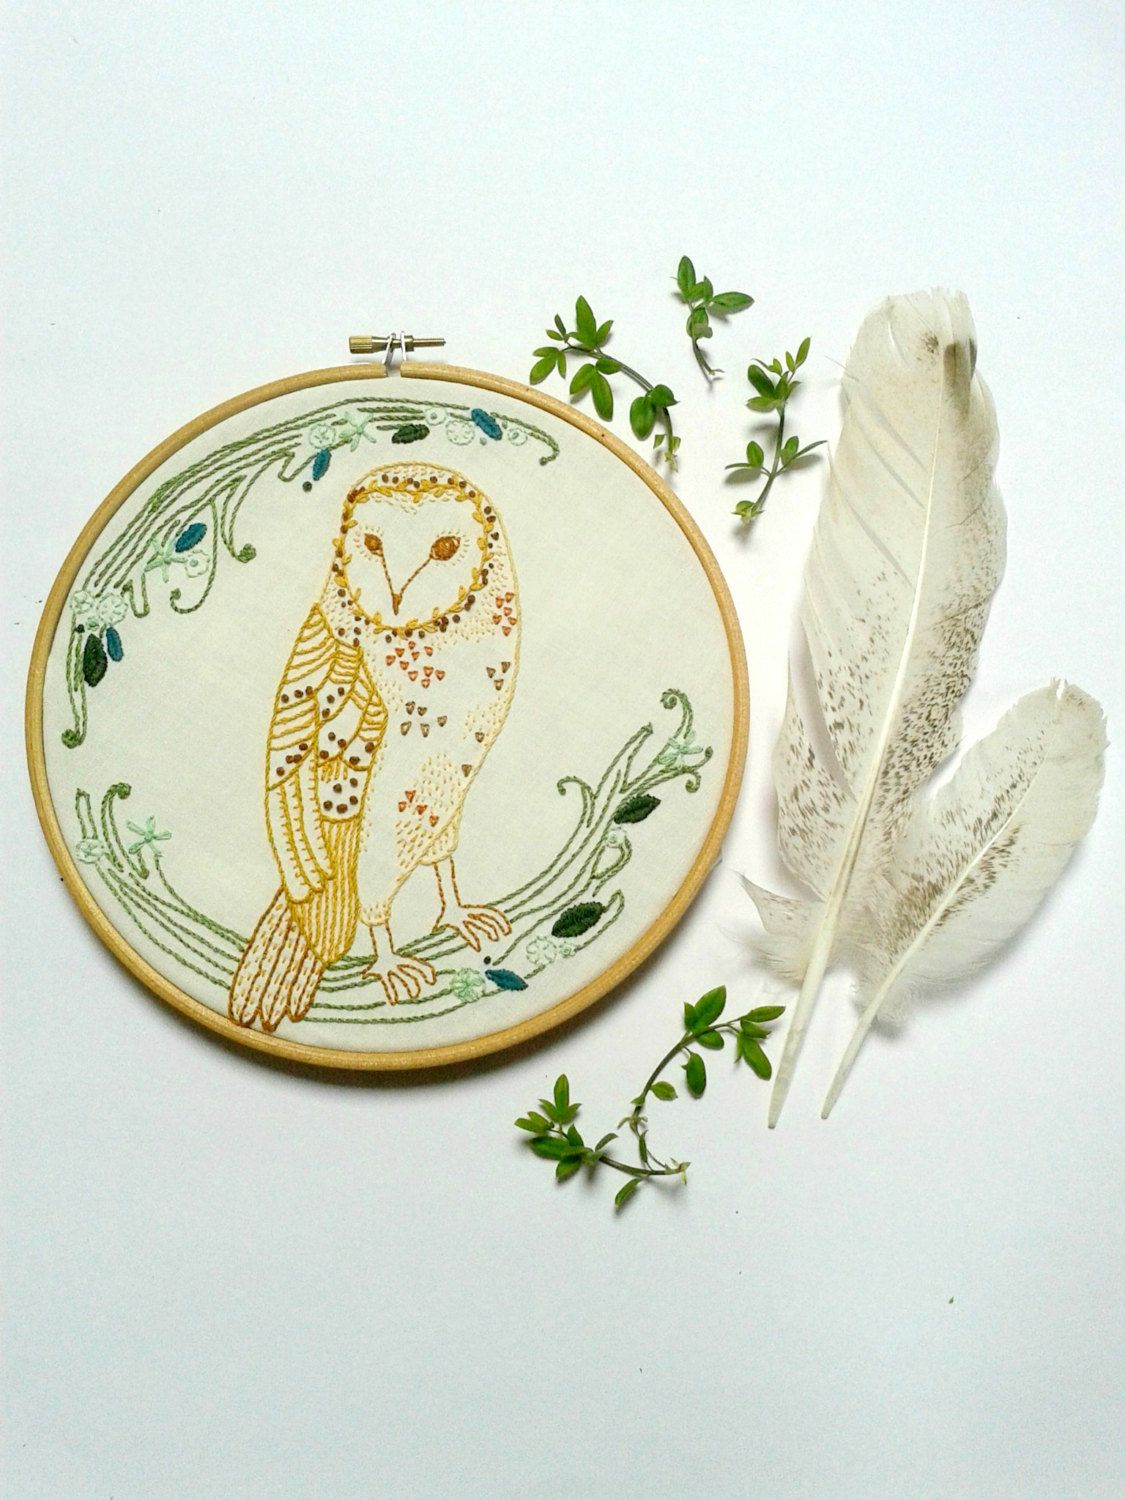 Barn owl embroidery pattern pdf diy wall art needle work owl barn owl embroidery pattern pdf diy wall art needle work owl pattern home decor embroidery wall art owl embroidery hoop art bankloansurffo Image collections